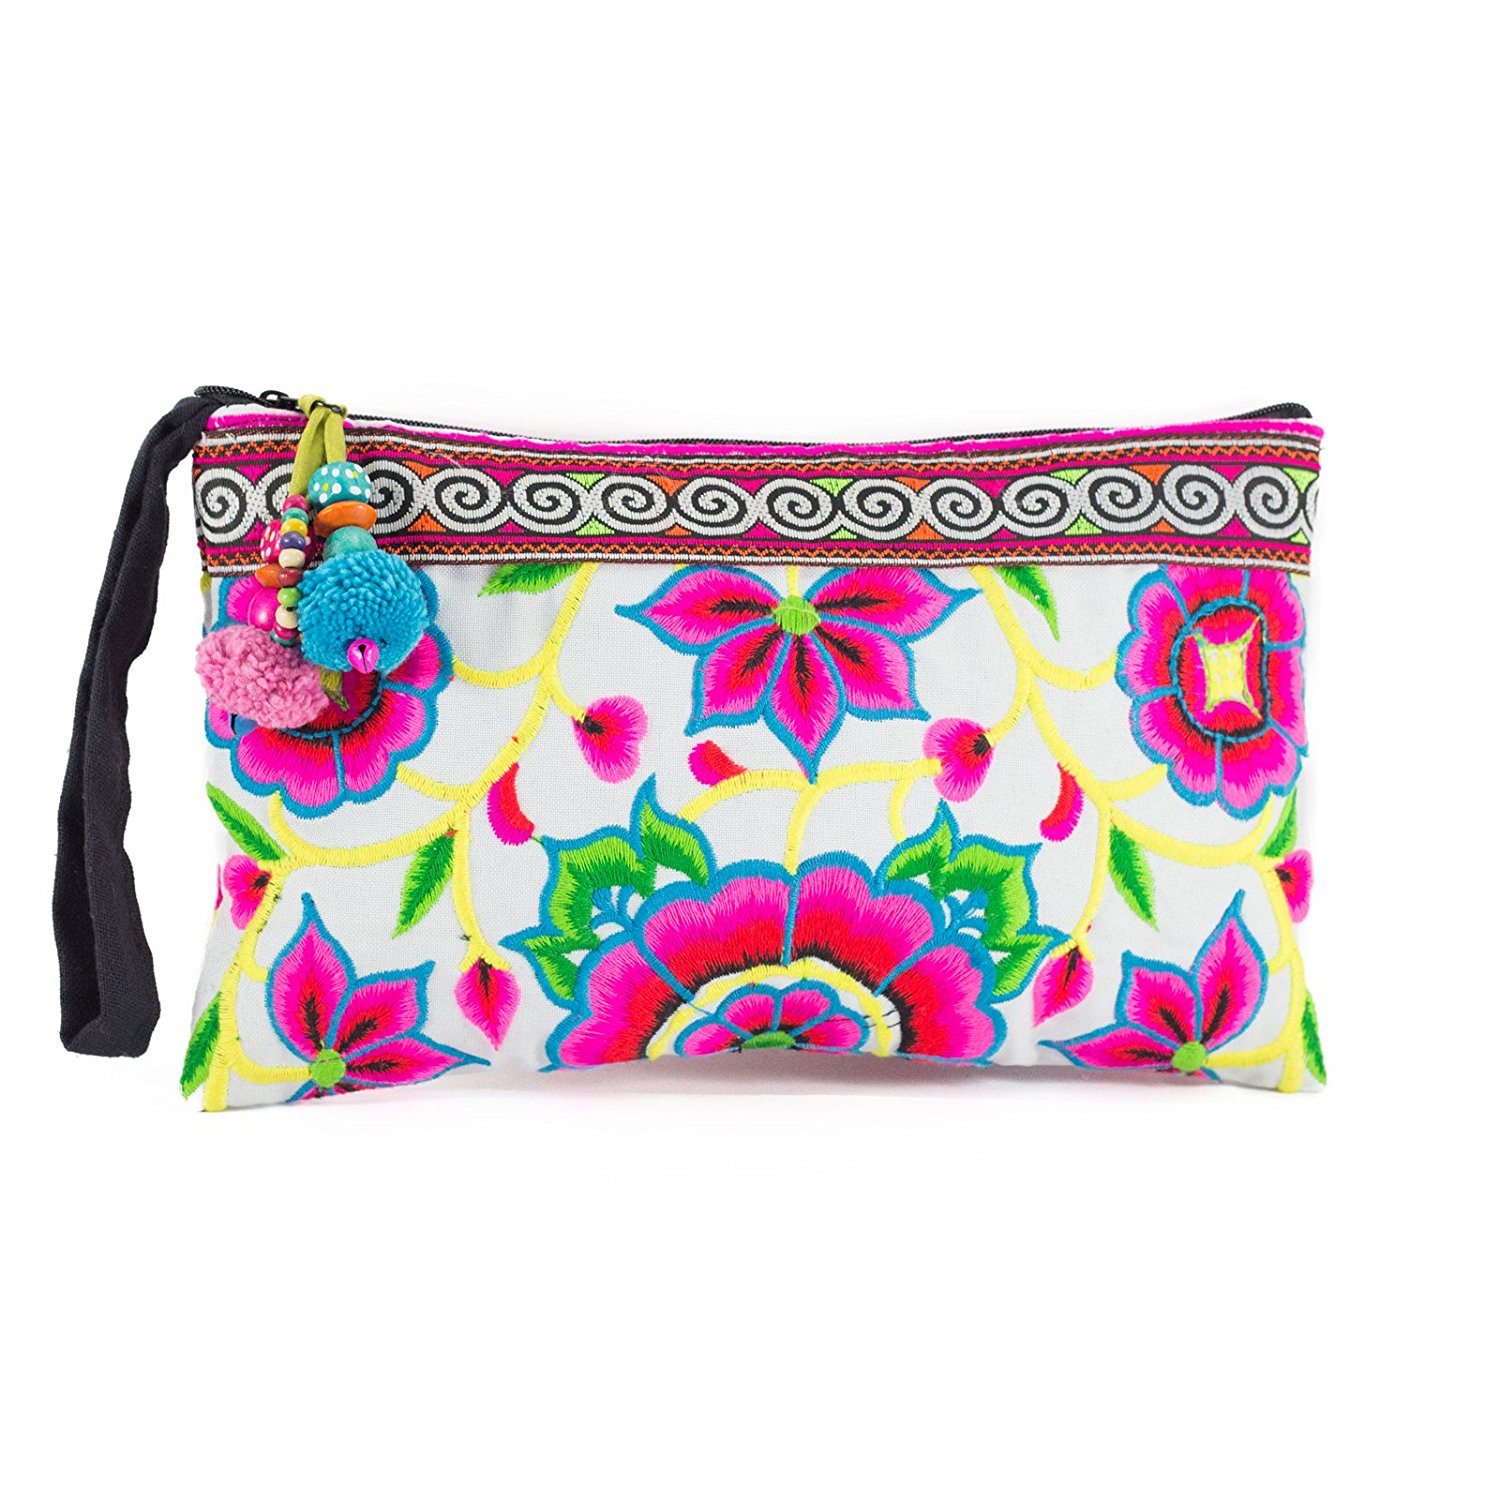 Changnoi Lime Hill Tribe Tote Bag Made By Thai Hmong Ethnic Purse Fair Trade